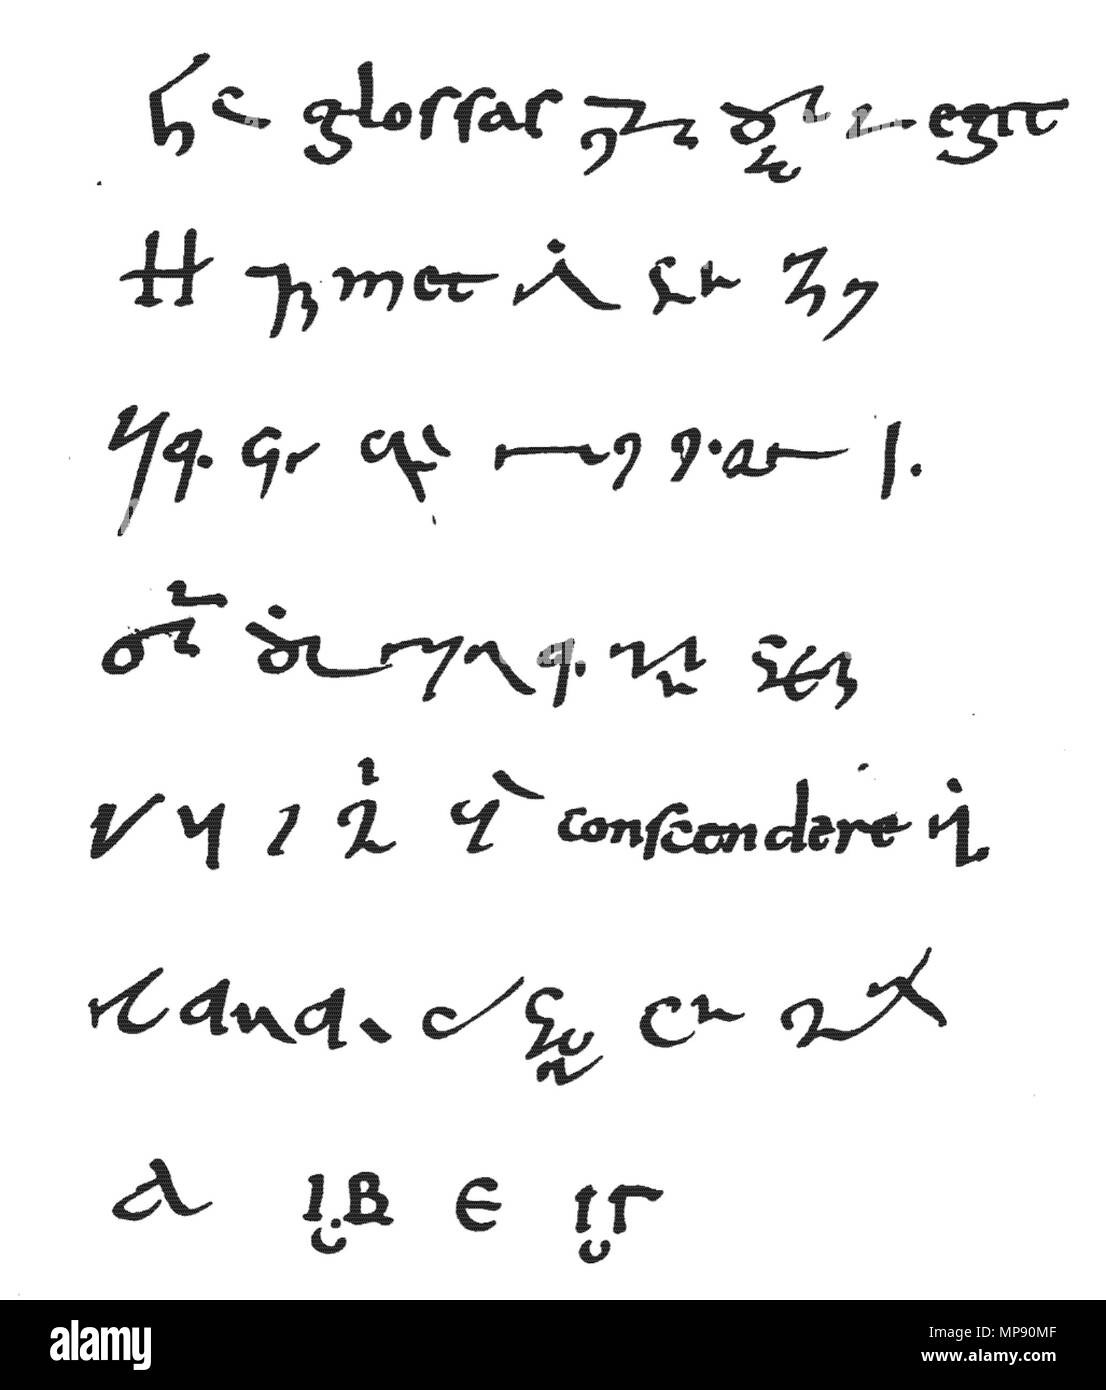 . English: Metric colophone of manuscript Laon, Bibl. mun. 444, fol. 275v, written in tironian notes by one of the scribes of Martinus Hibernensis (Martin of Laon), reproduced from a facsimile in Catalogue général des manuscrits des bibliothèques publiques des départements, vol. I, Imprimérie nationale, Paris 1849, between p. 234 and p. 235 . 9th century. Medieval scribe (Hartgarius of Laon?) 792 Laon 444 275v - Stock Image